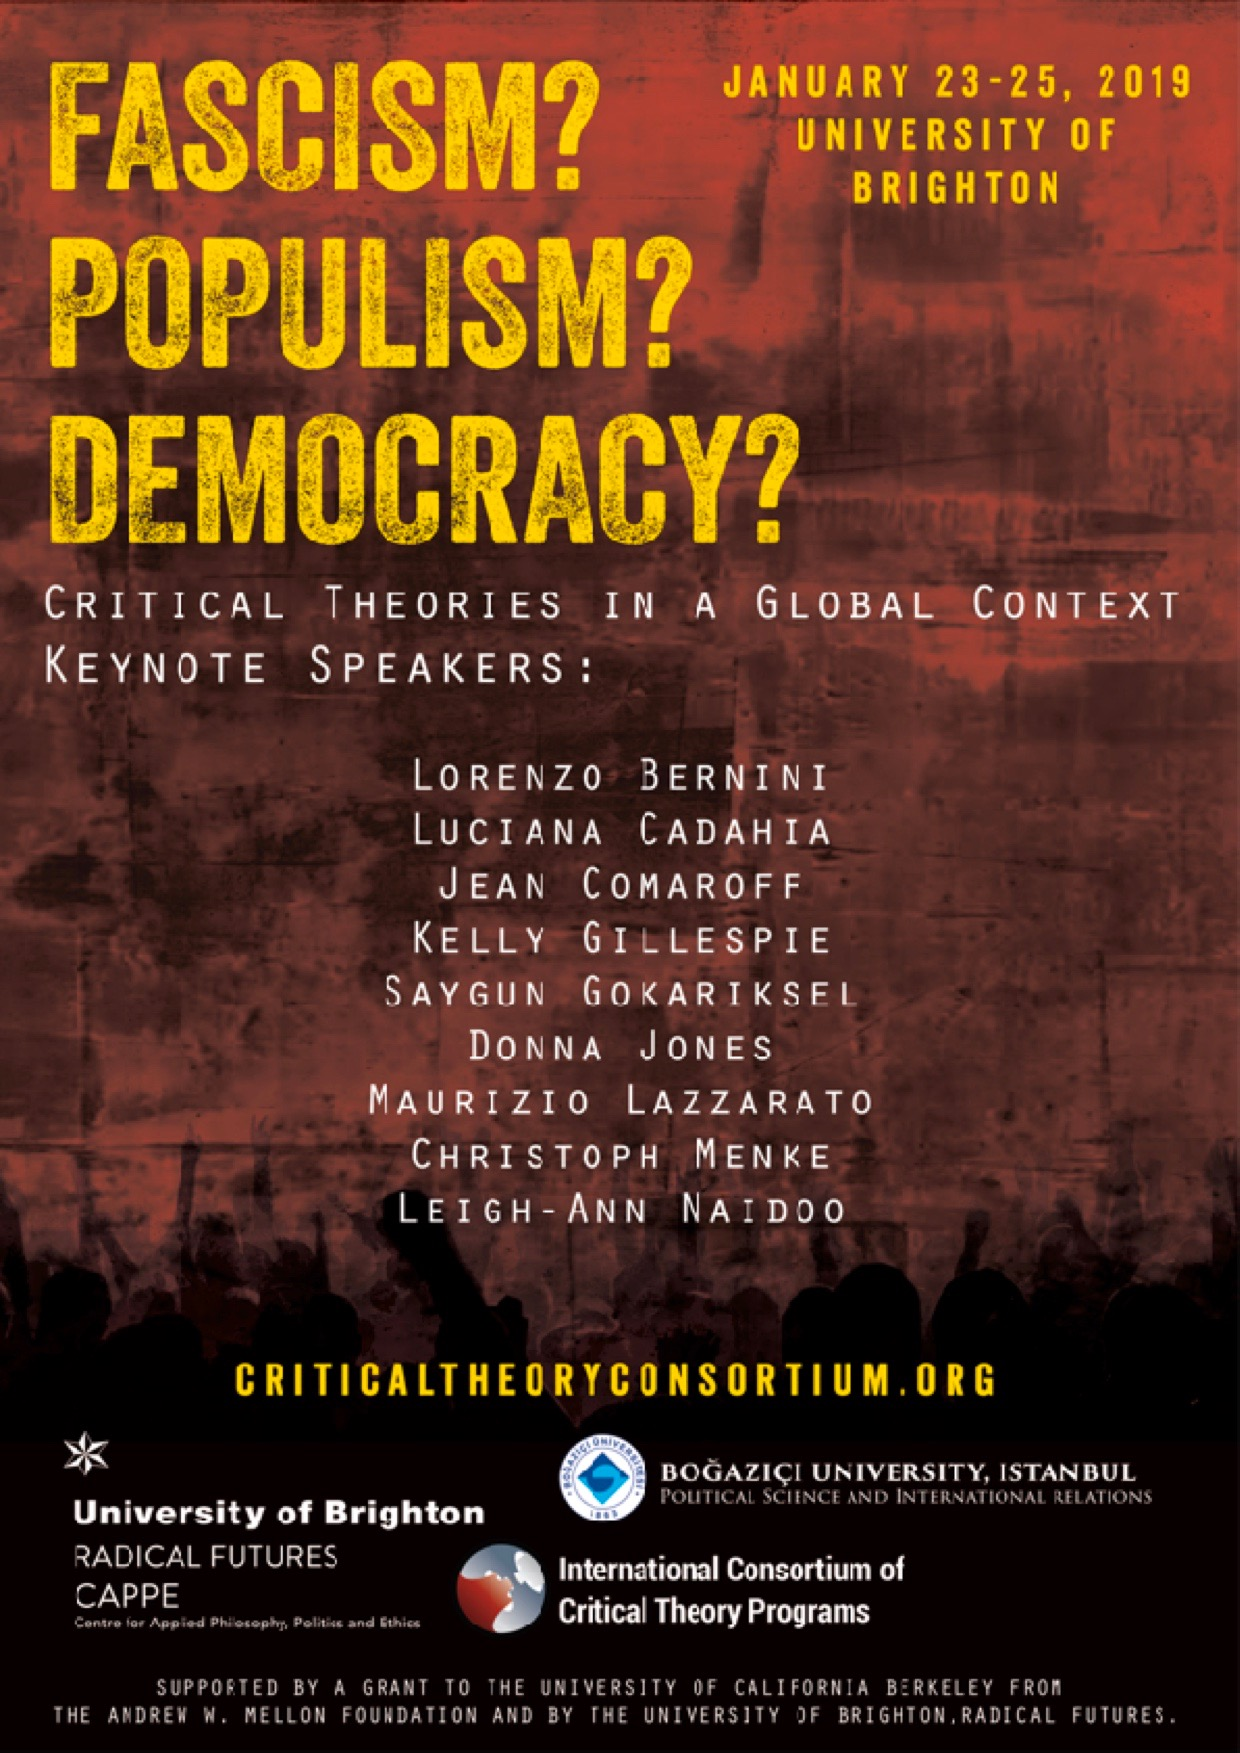 Fascism? Populism? Democracy? Critical Theory in a Global